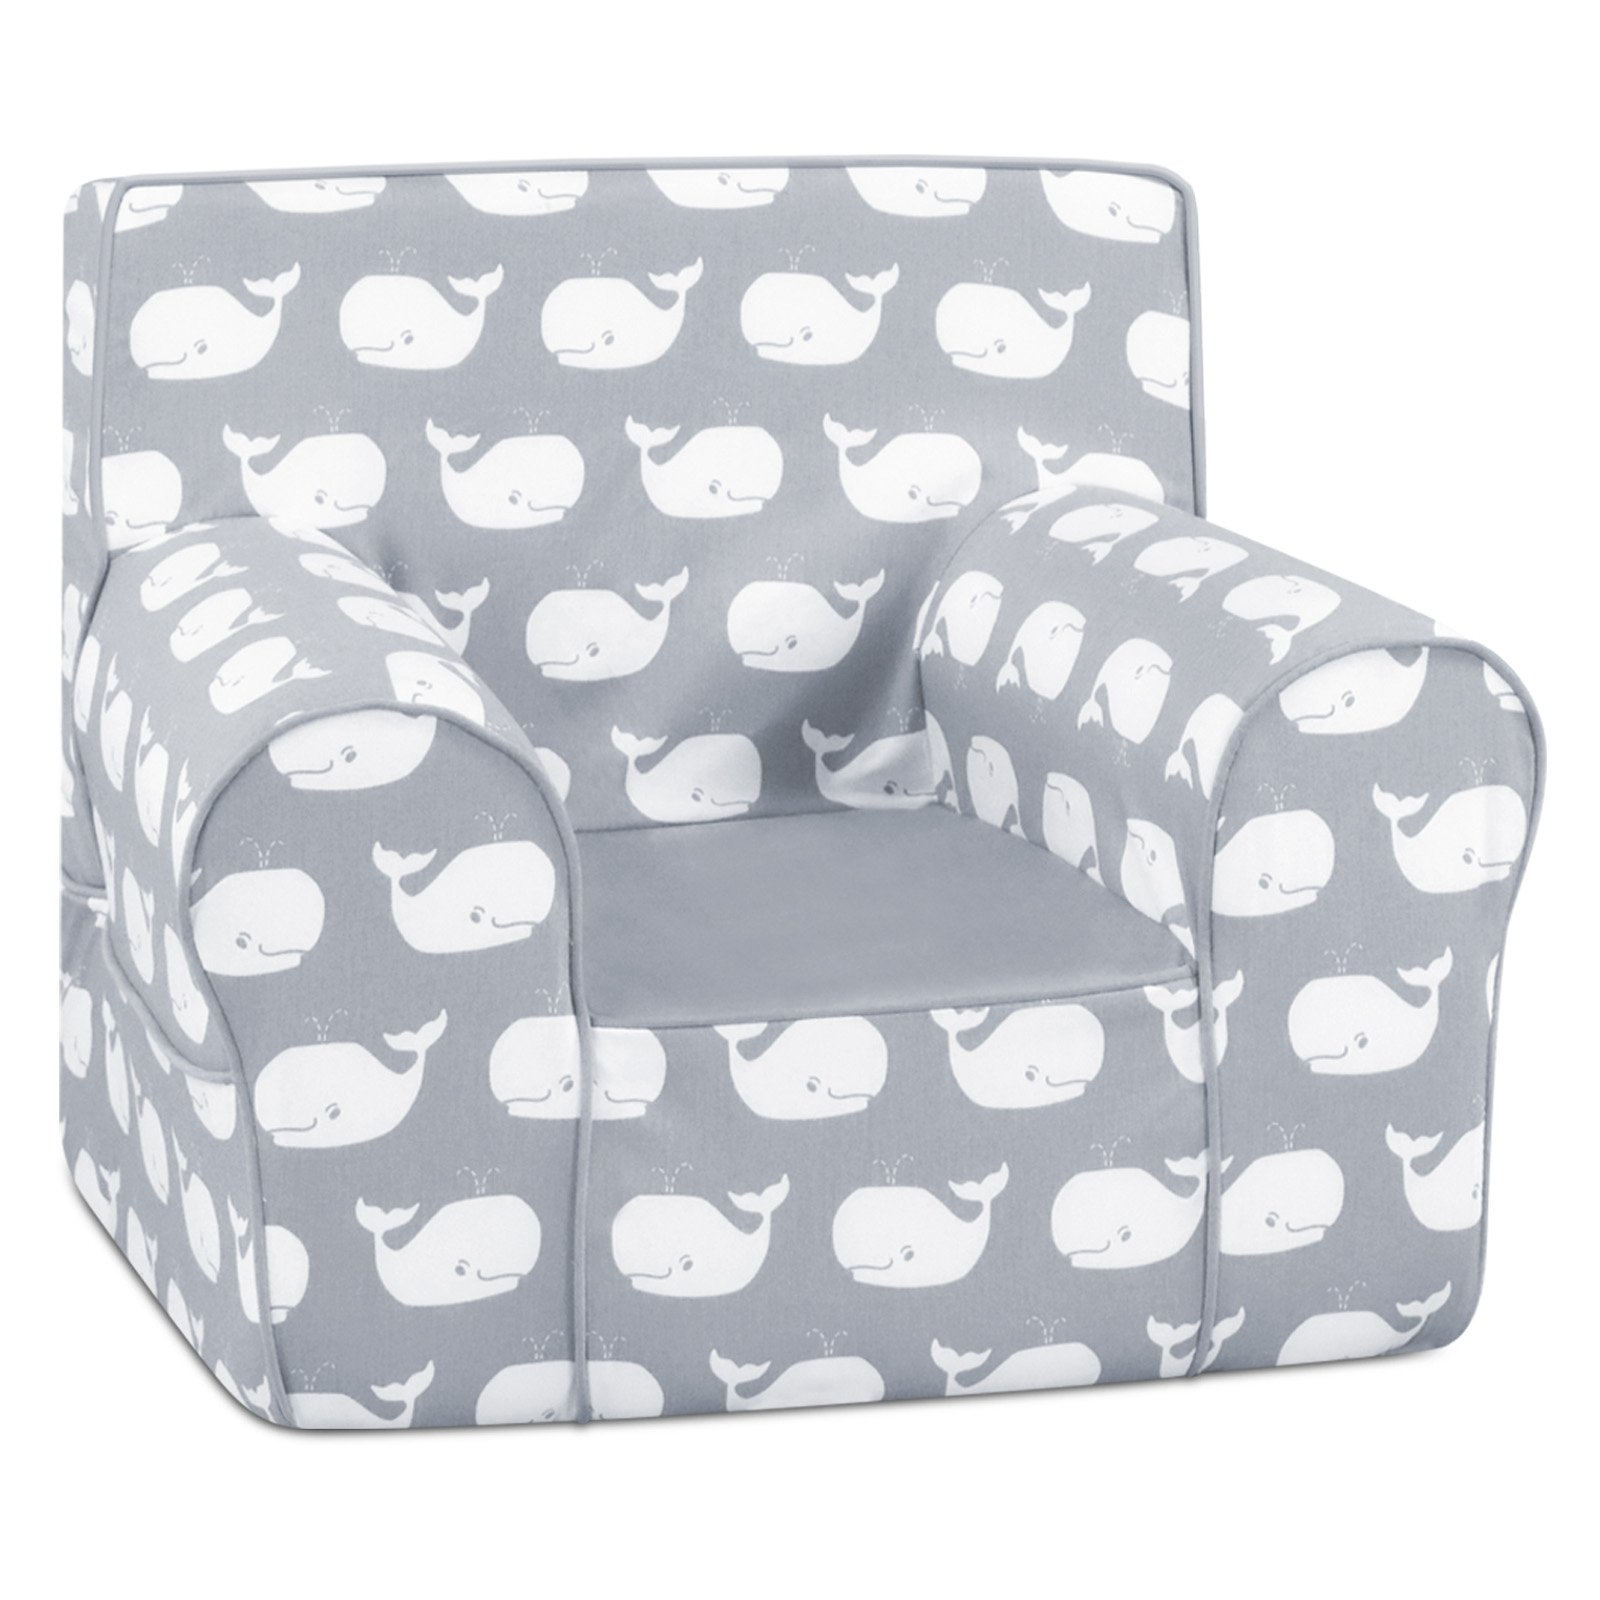 Superieur Grab N Go Kidu0027s Foam Chair With Handle   Whale Tales Storm White Twill With  Pebbles   Walmart.com